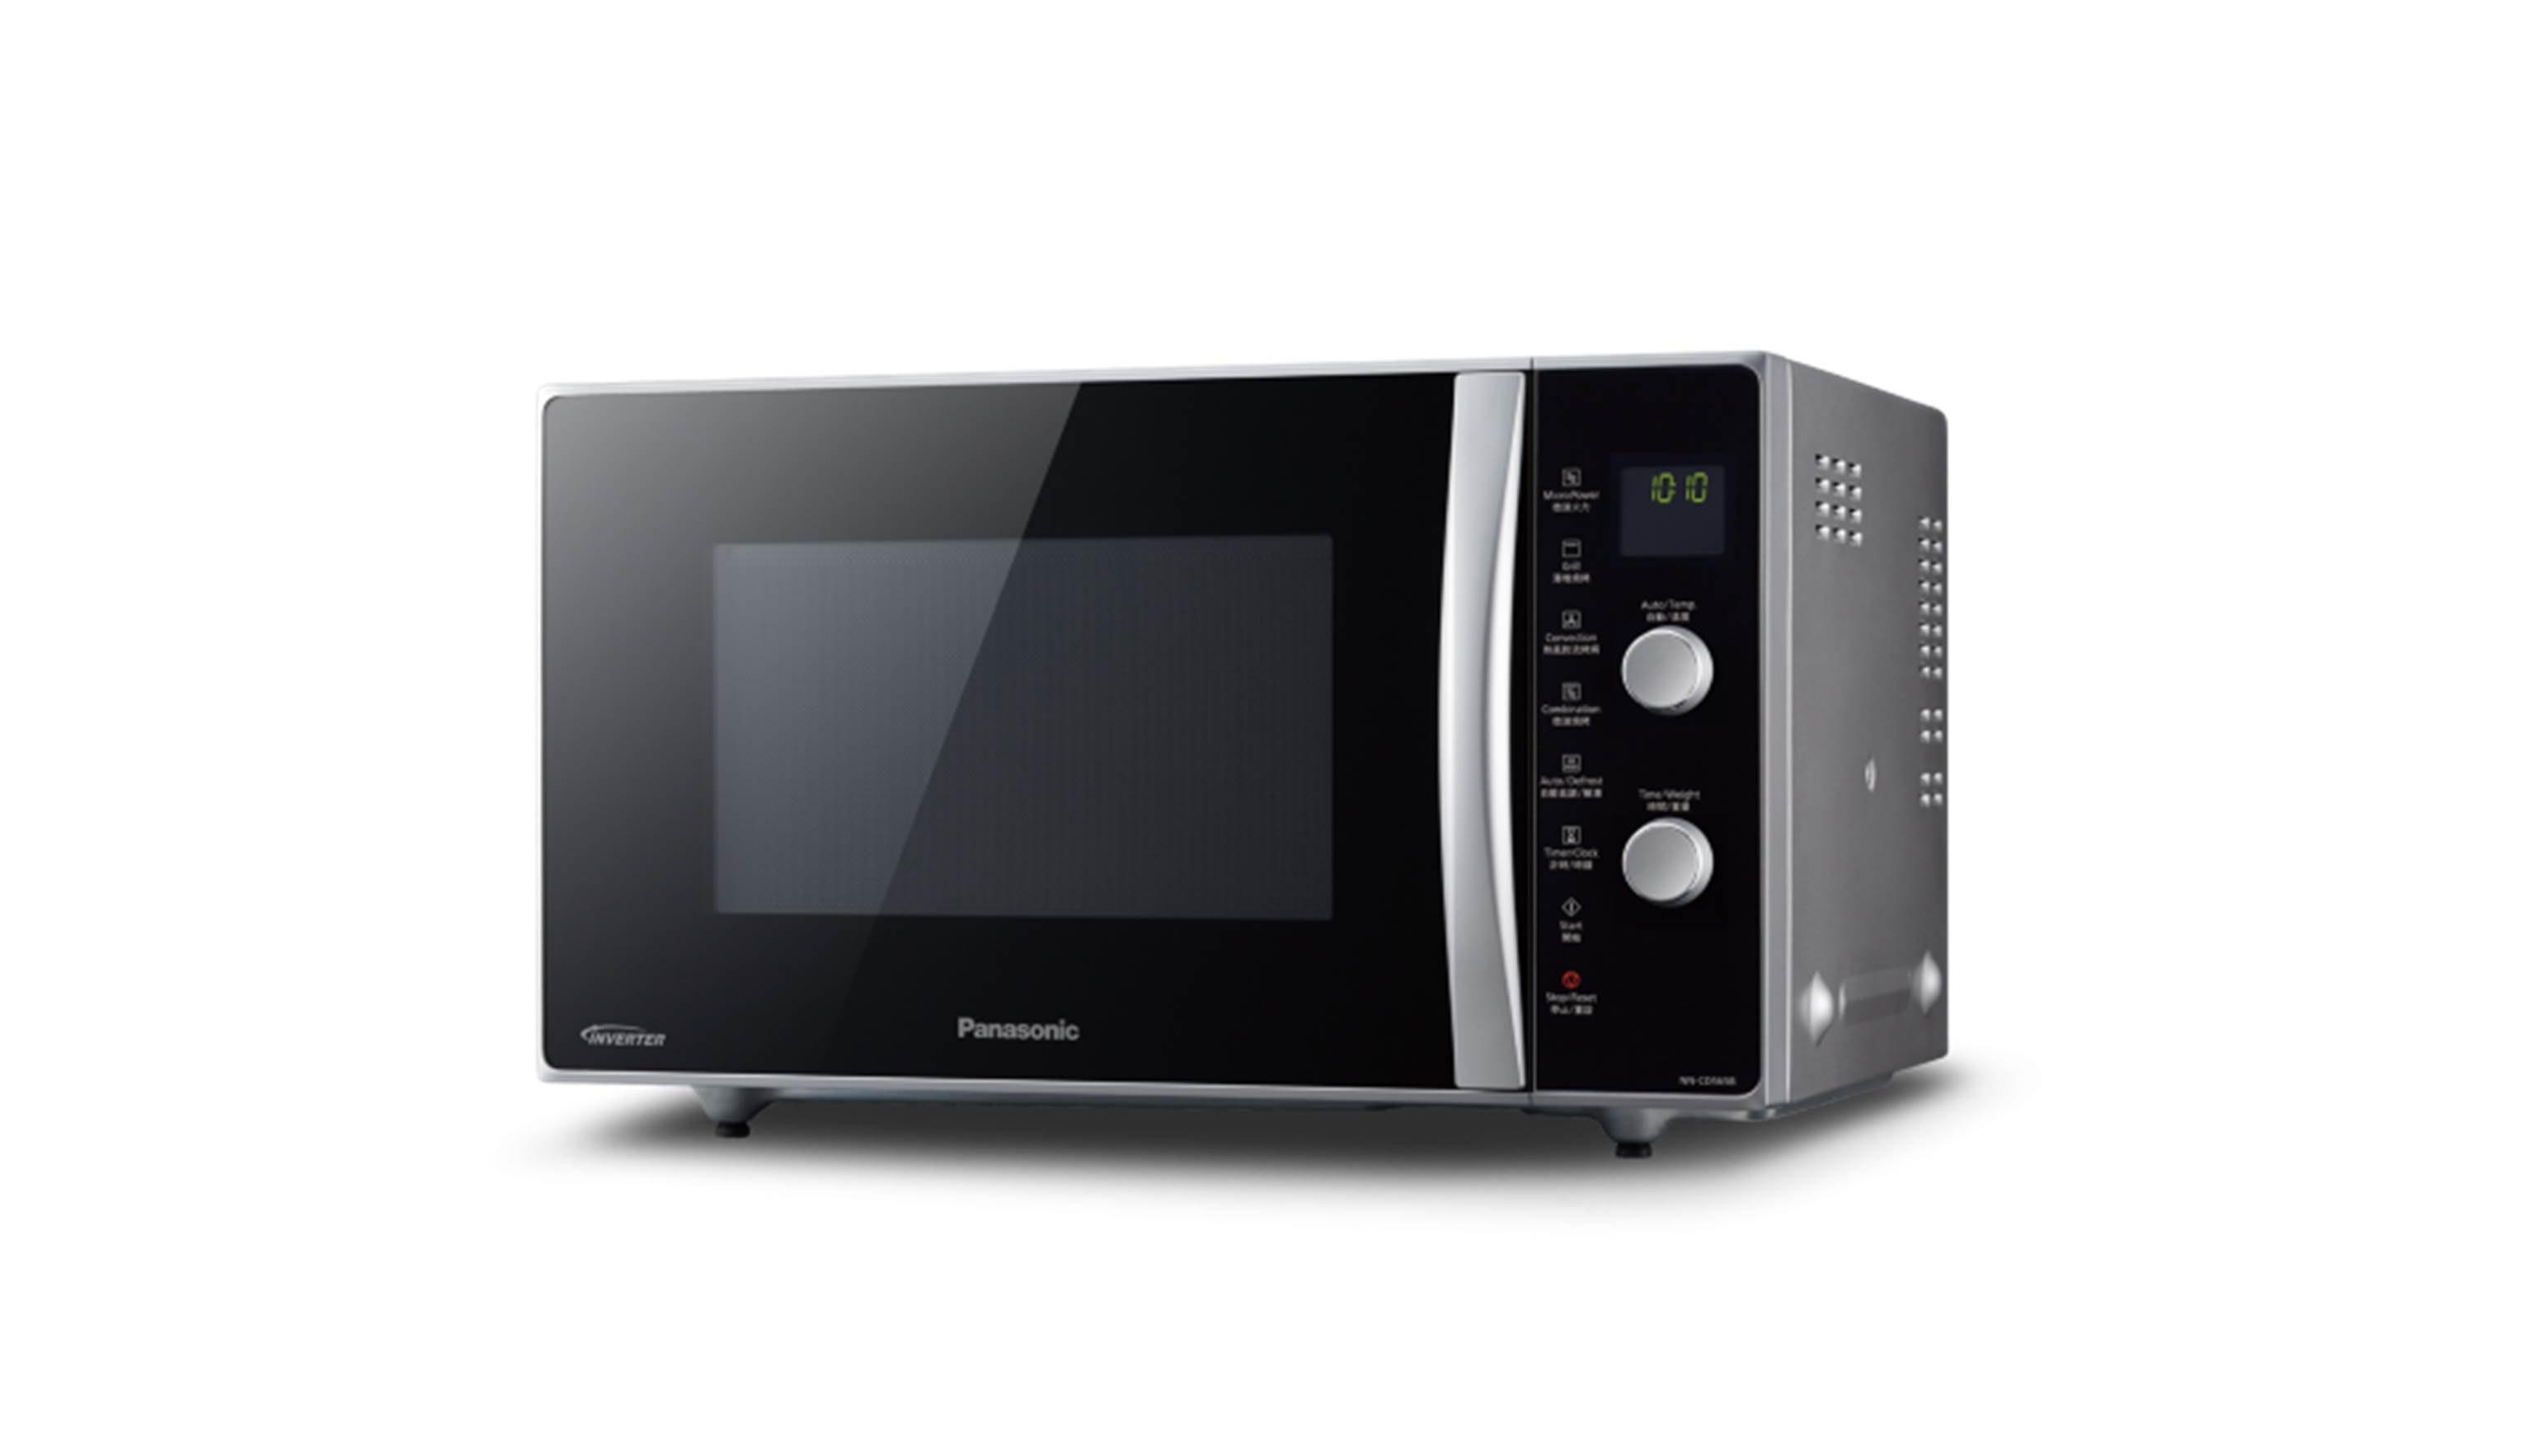 Panasonic 27L NN-CD565B Microwave Oven-Side View